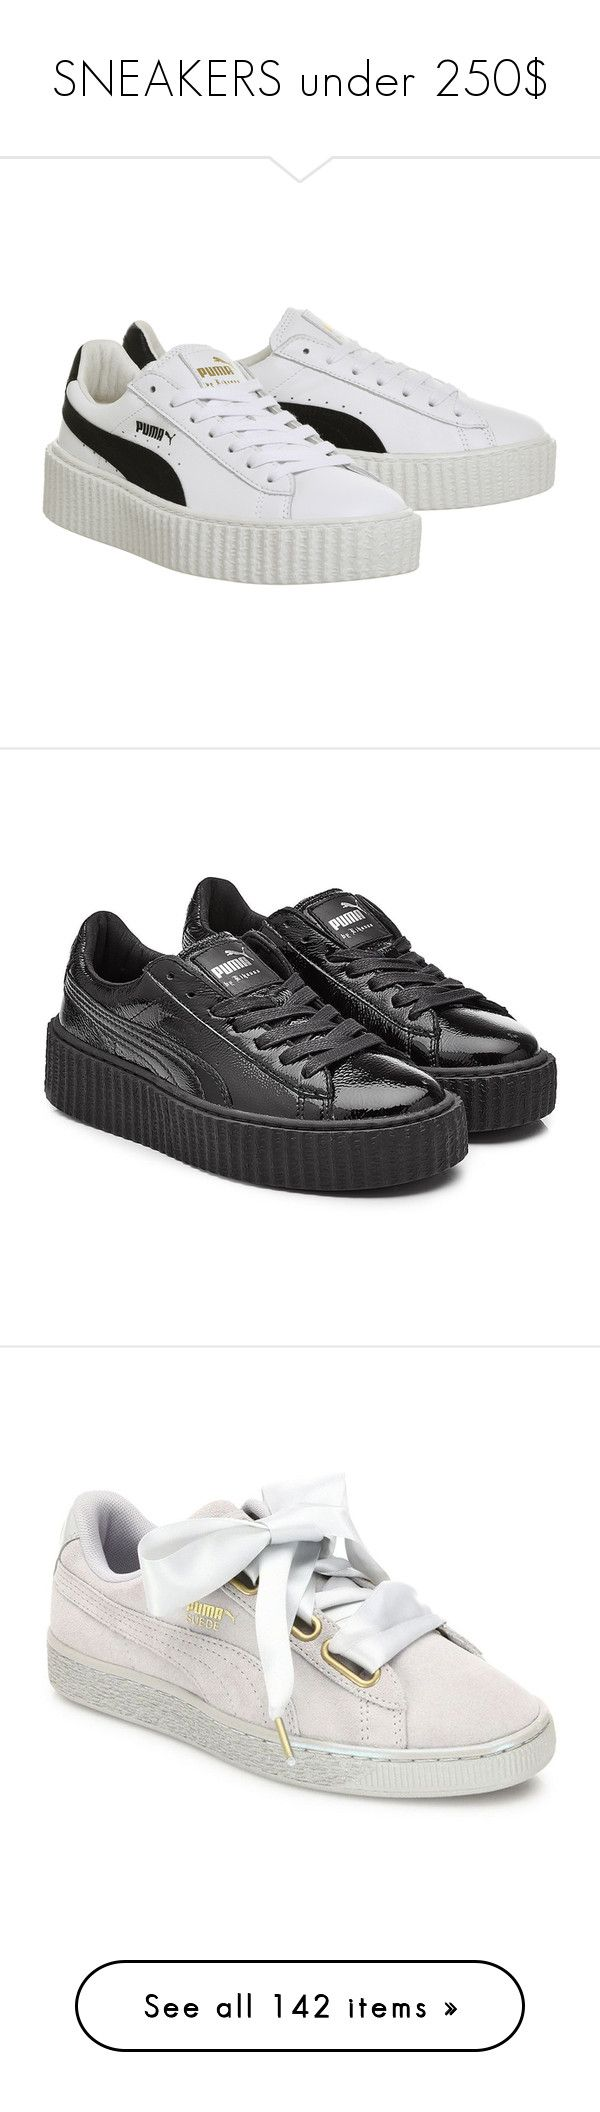 """""""SNEAKERS under 250$"""" by fashionbymgda ❤ liked on Polyvore featuring shoes, black and white shoes, white black shoes, black and white creeper shoes, leather shoes, puma footwear, sneakers, black, black trainers and black sports shoes"""